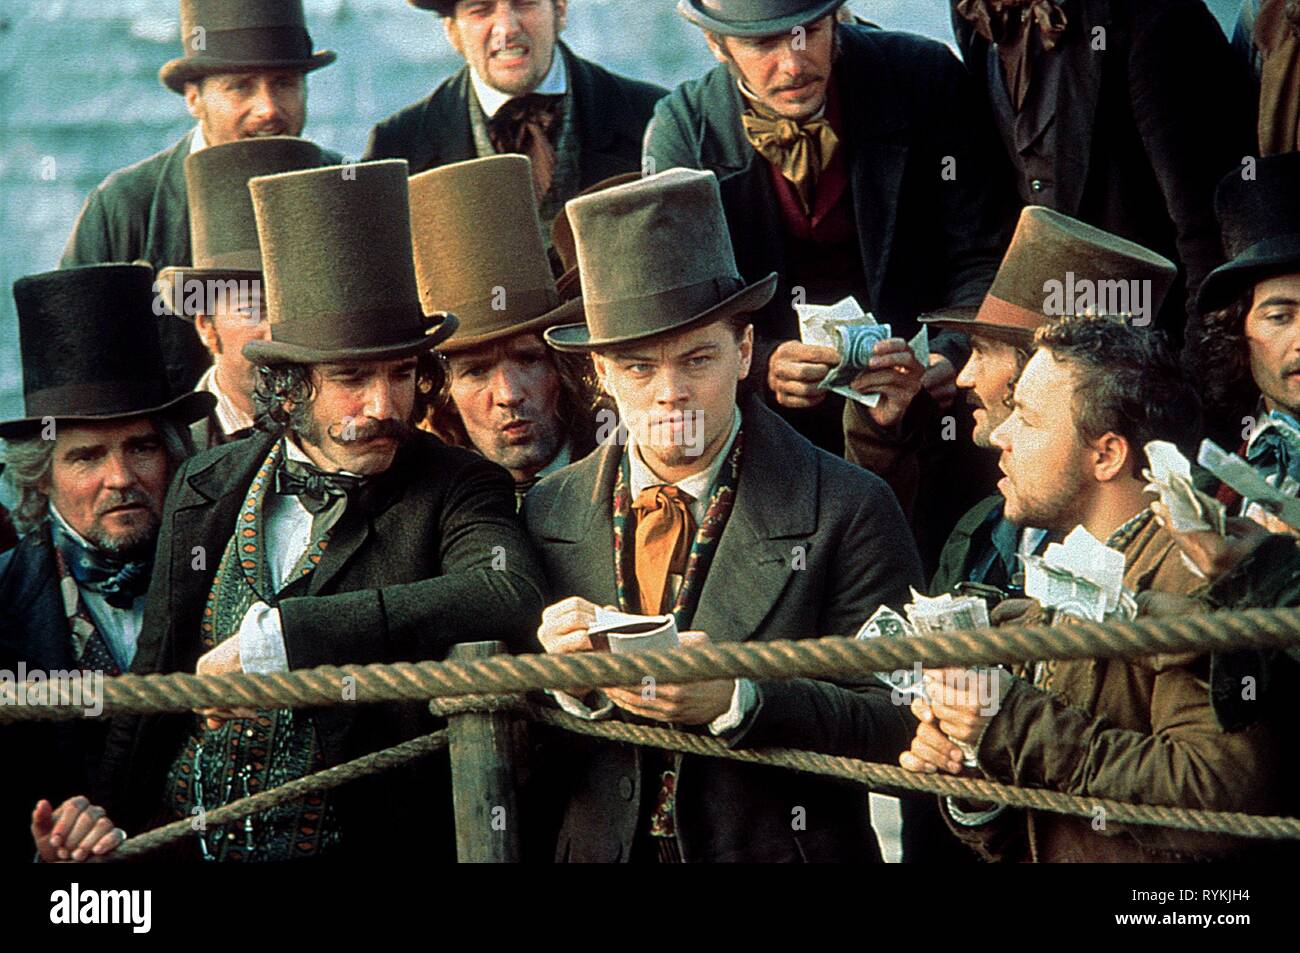 DAY-LEWIS,DICAPRIO, GANGS OF NEW YORK, 2002 - Stock Image